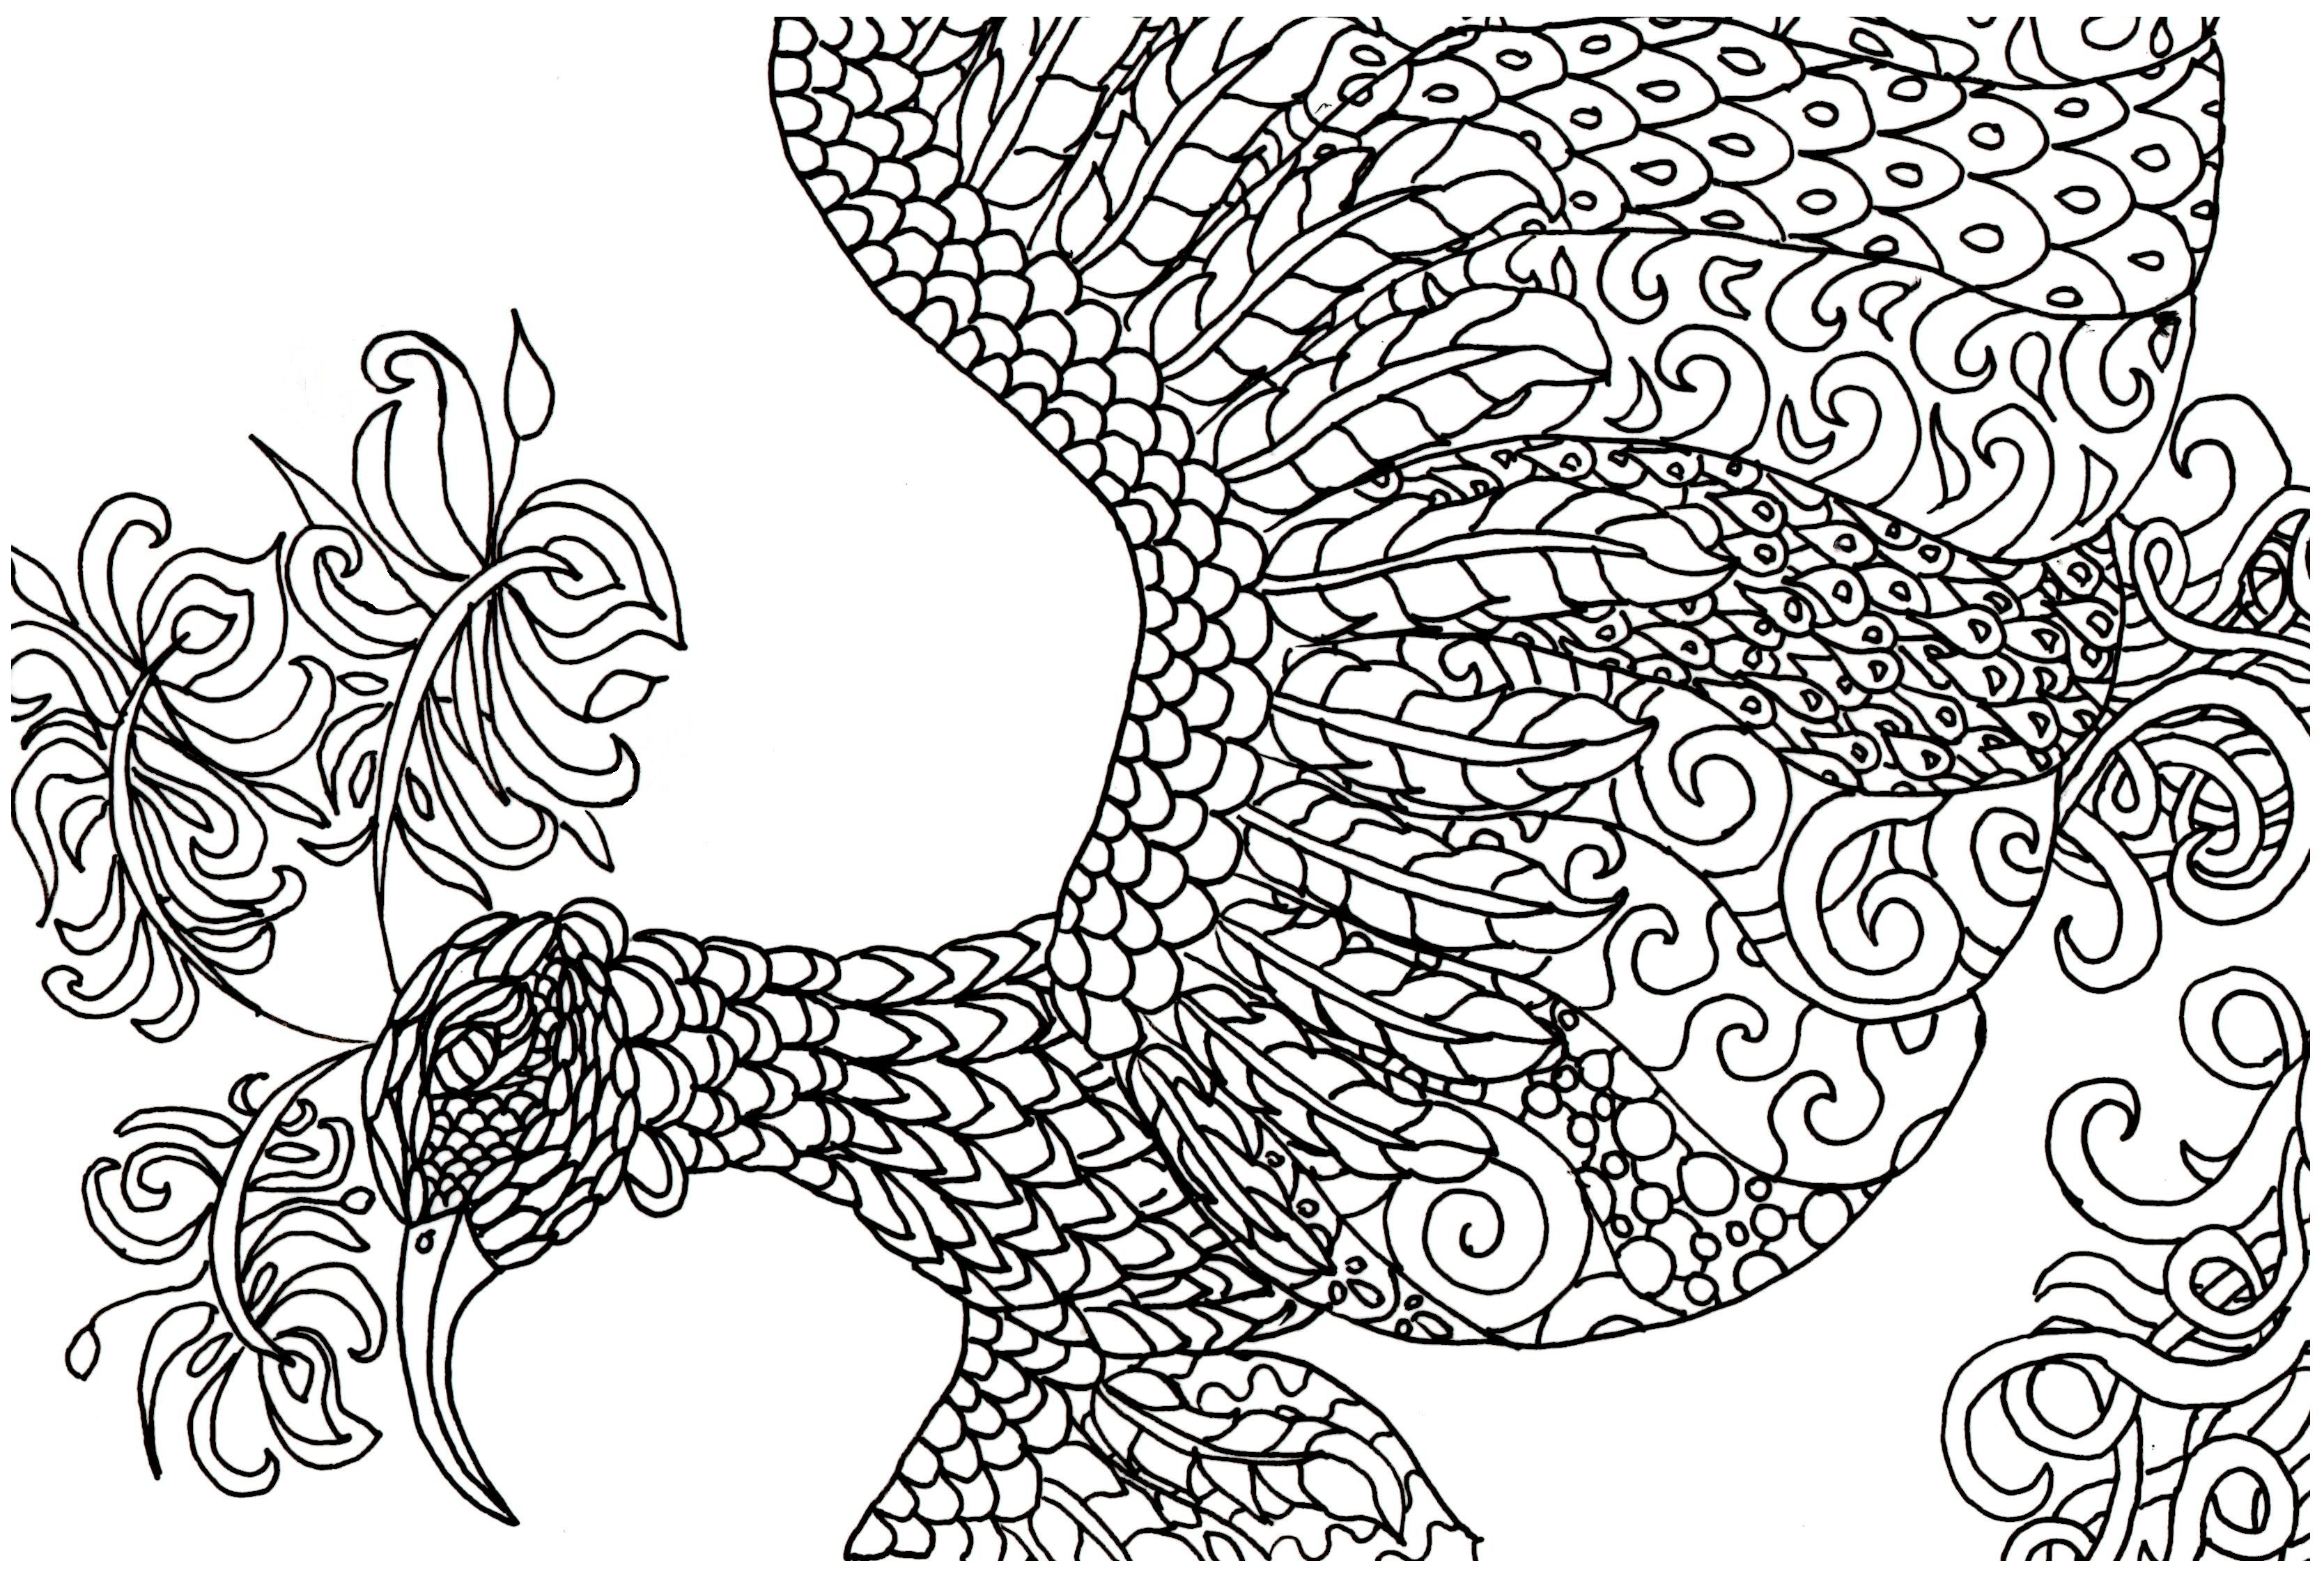 Free coloring pages in pdf - Free Coloring Pages In Pdf Coloring Pages Free Coloring Pages Pdf Colouring Book Pdf Adults